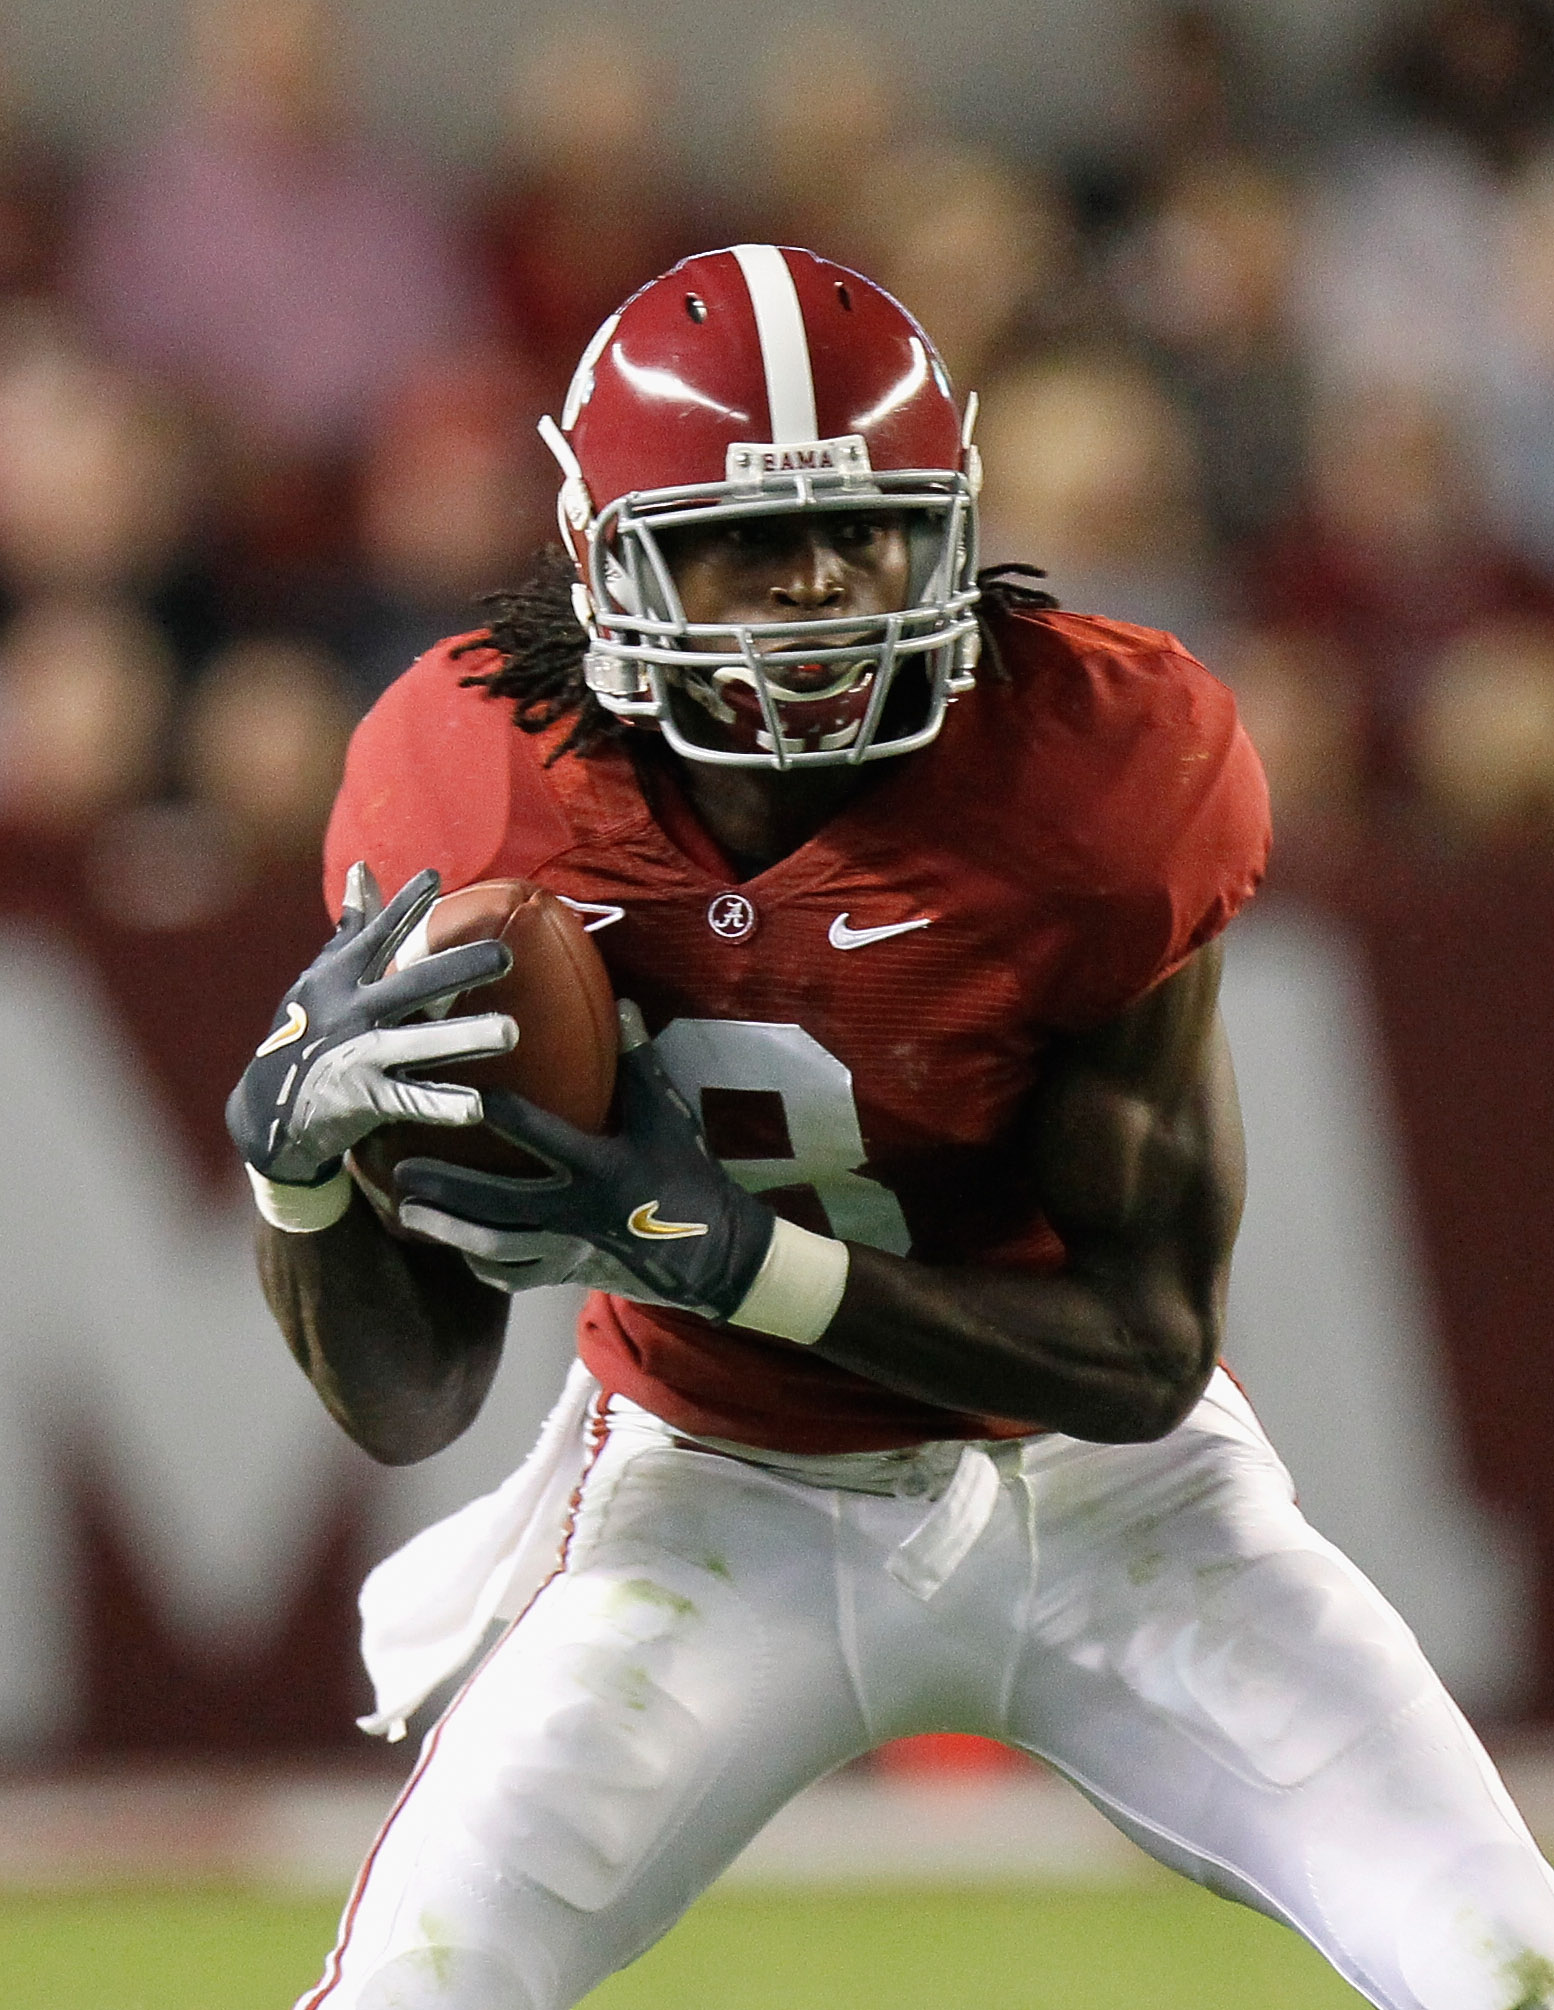 TUSCALOOSA, AL - OCTOBER 16:  Julio Jones #8 of the Alabama Crimson Tide against the Ole Miss Rebels at Bryant-Denny Stadium on October 16, 2010 in Tuscaloosa, Alabama.  (Photo by Kevin C. Cox/Getty Images)